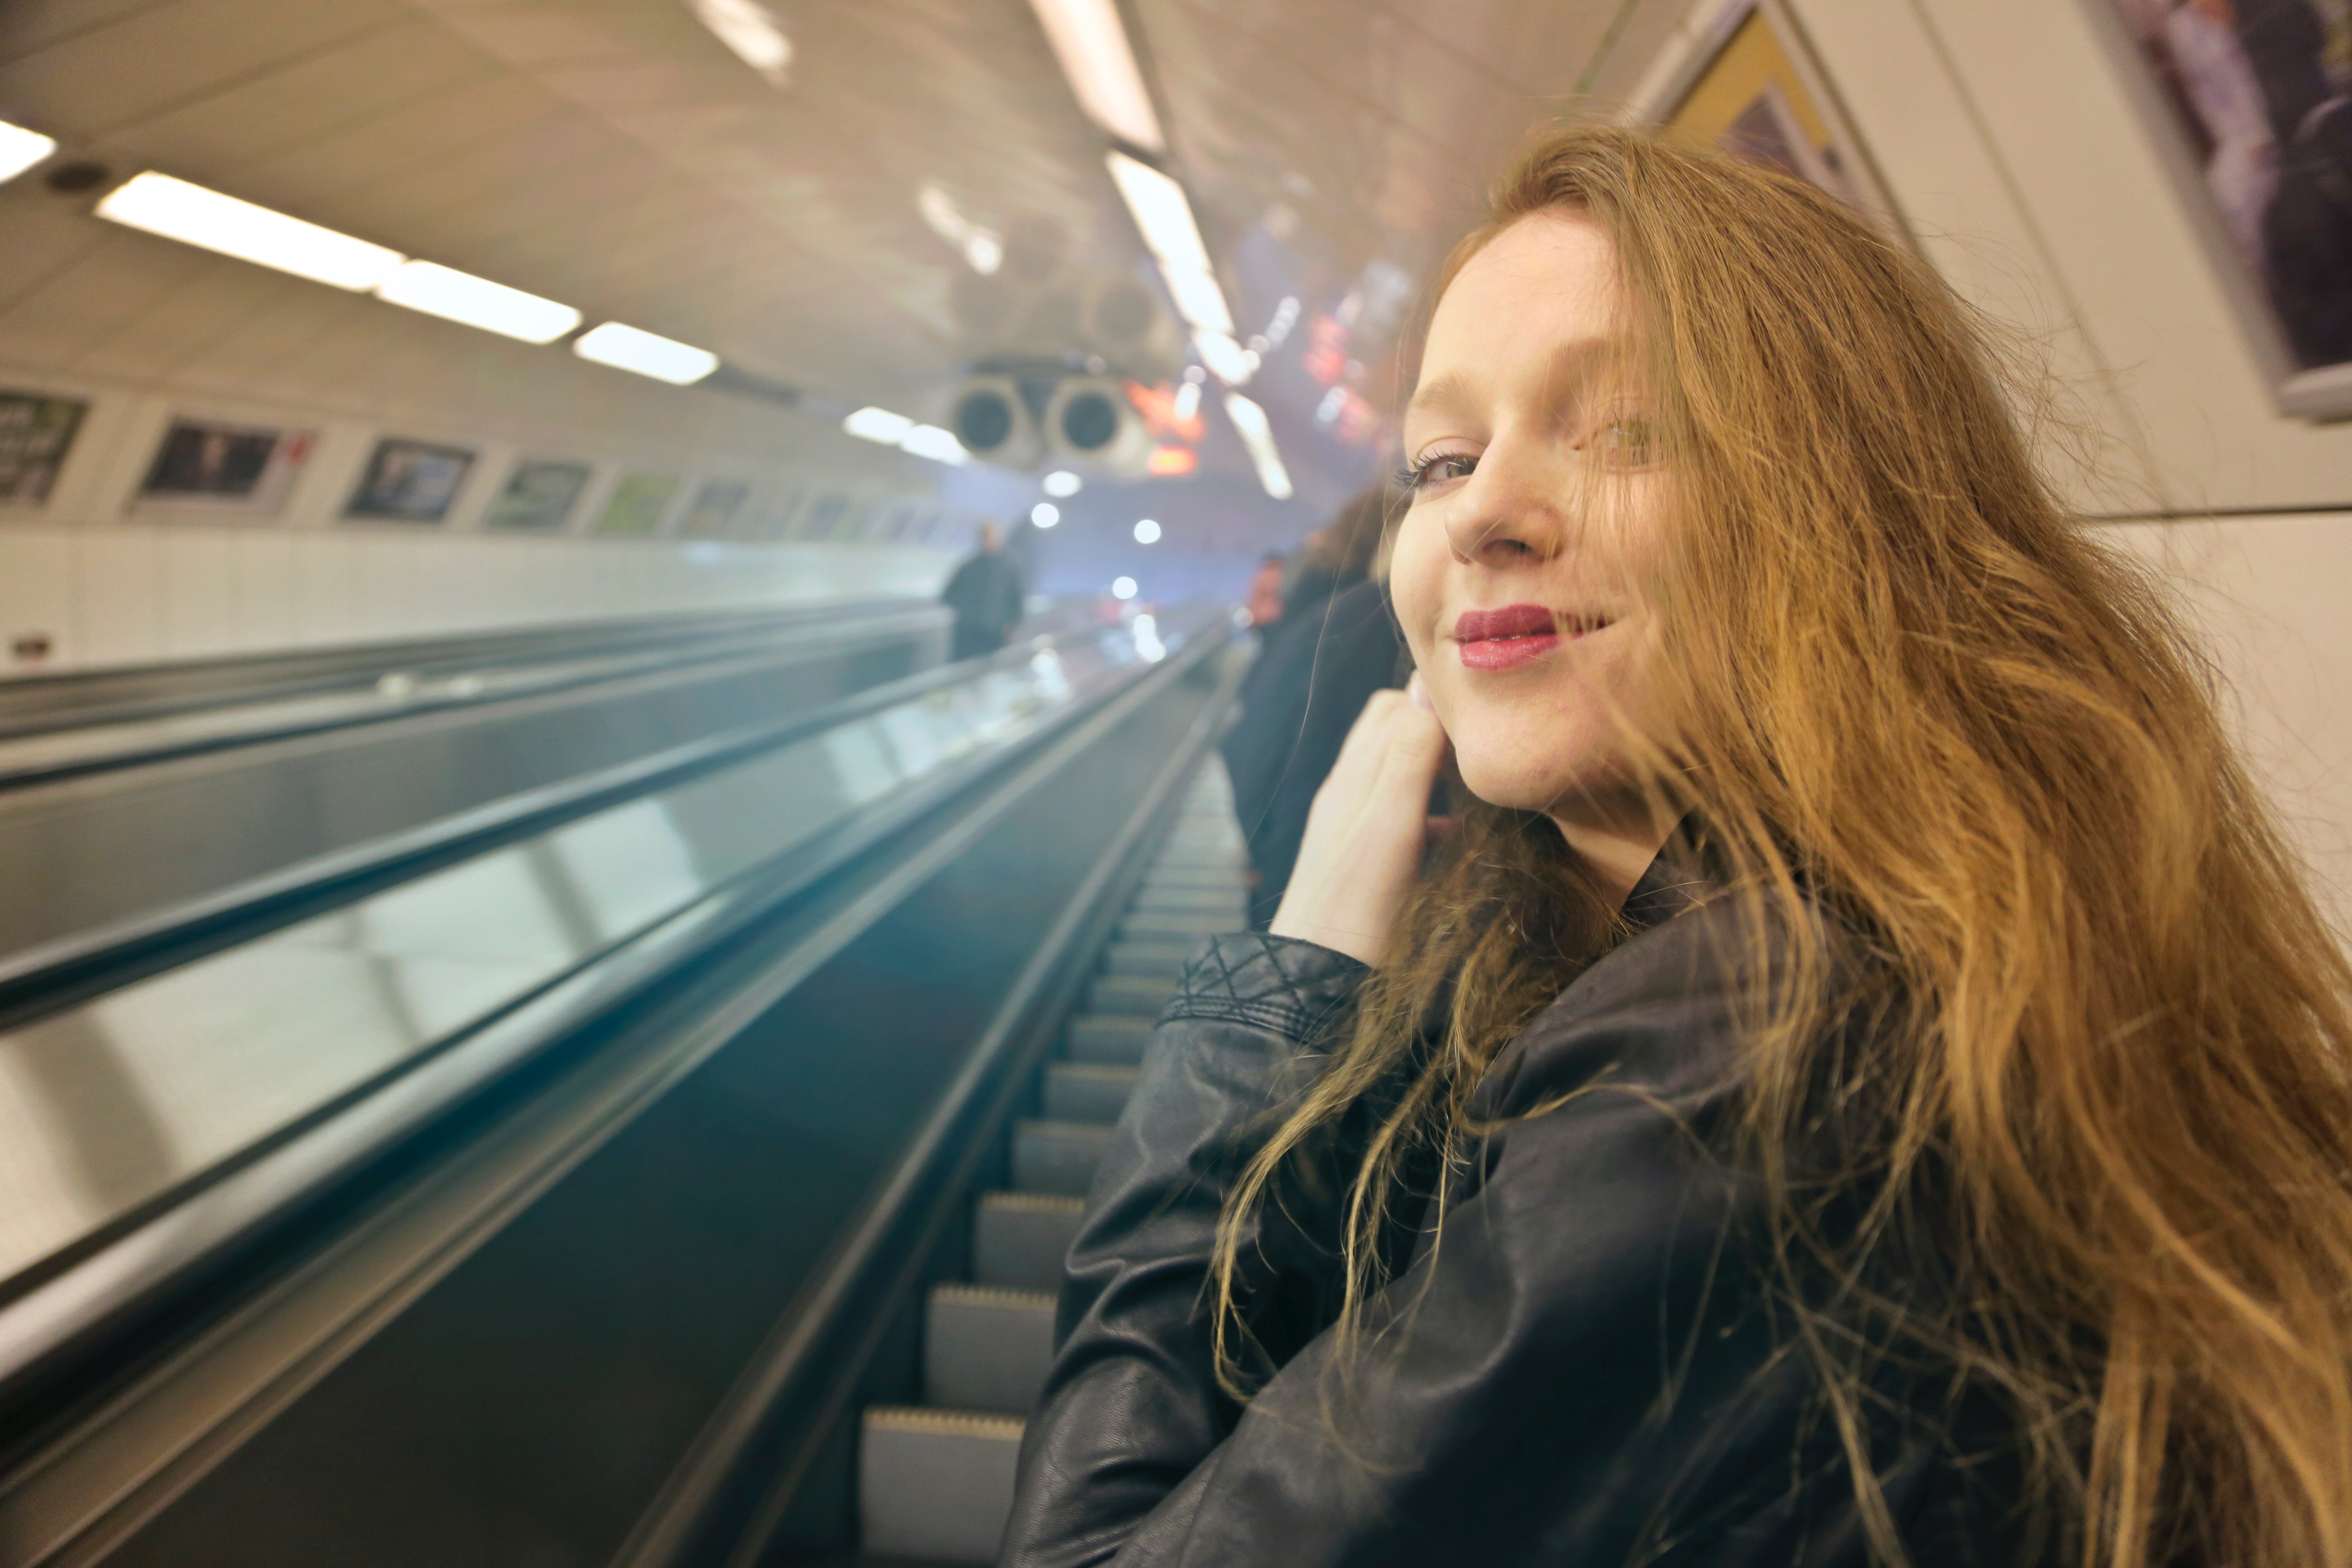 Woman in Black Jacket, Subway system, Smile, Stairs, Station, HQ Photo